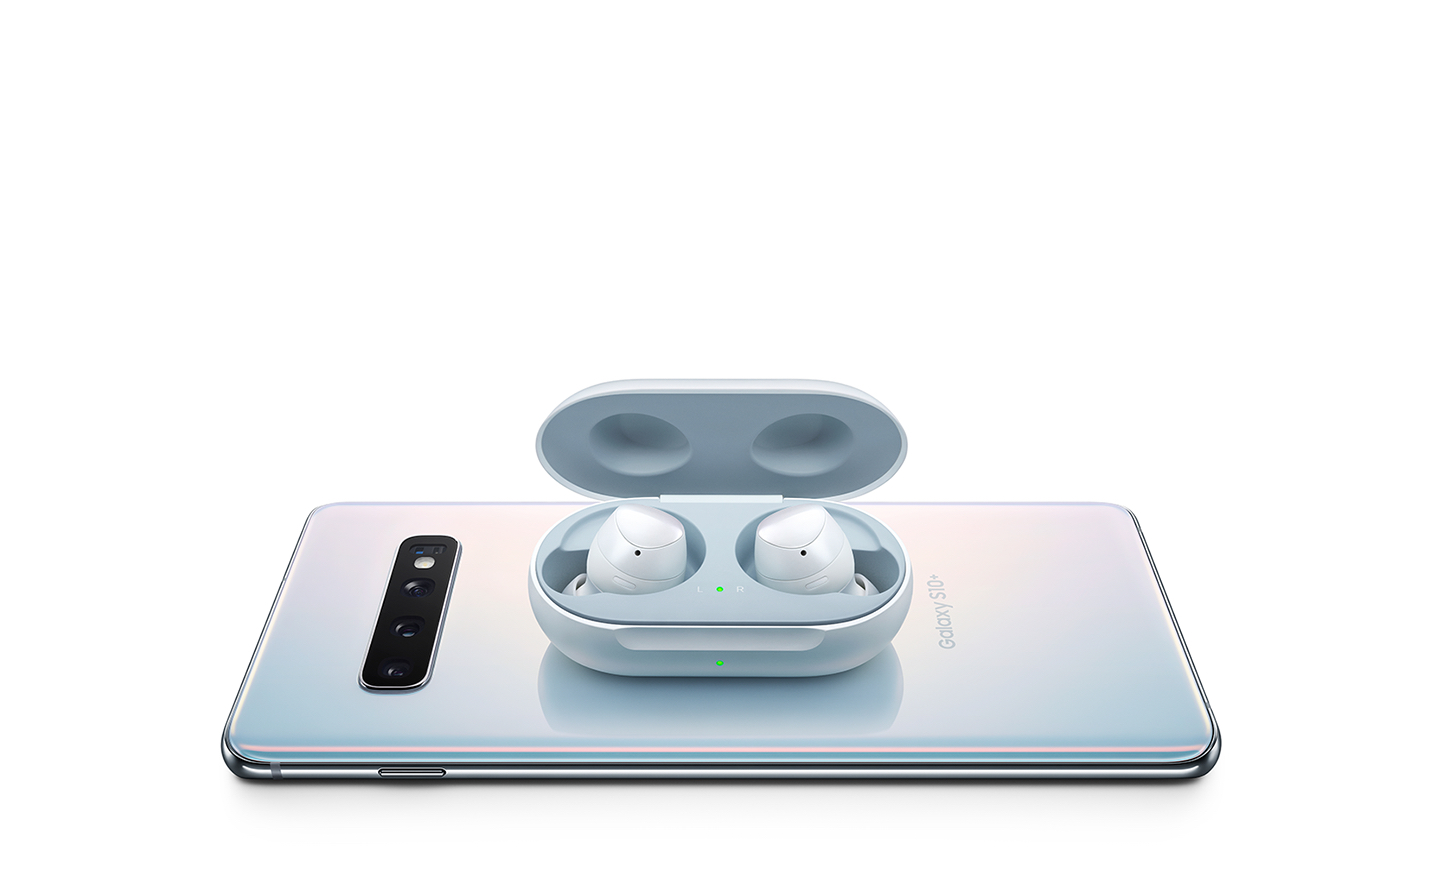 goHere galaxy buds review